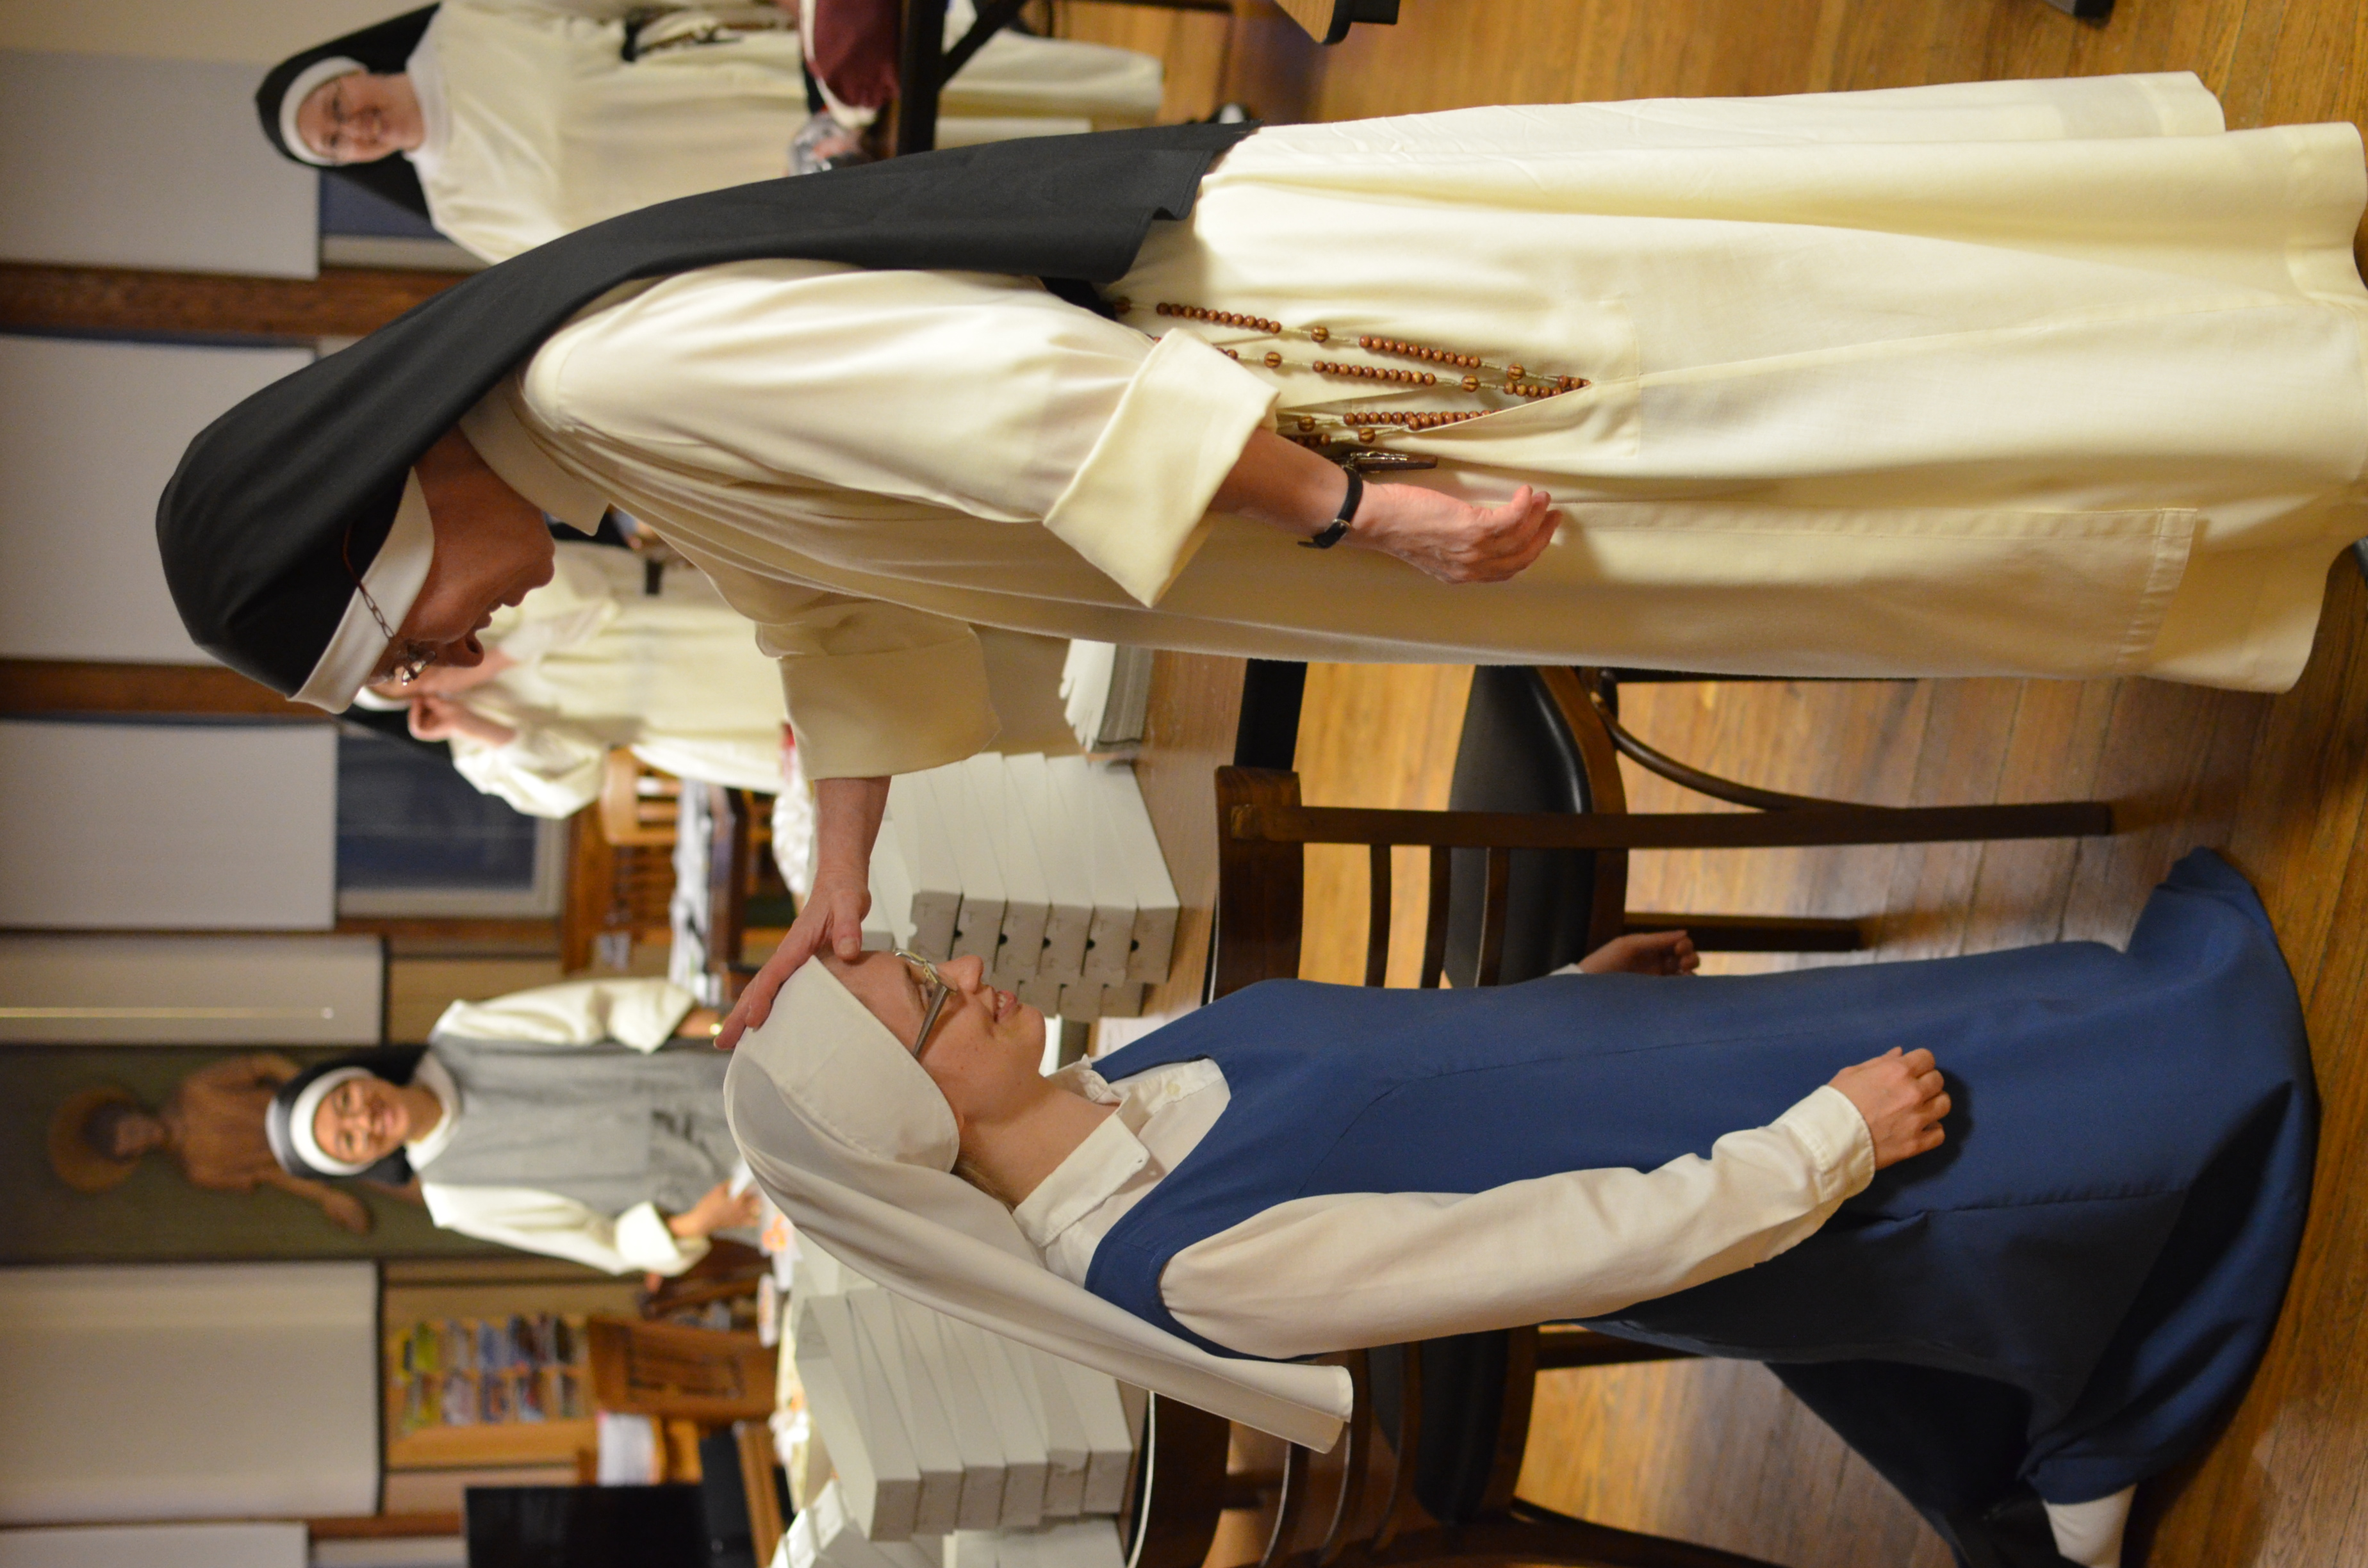 Sr. Maria receives the prioress's blessing prior to beginning her vestition retreat.